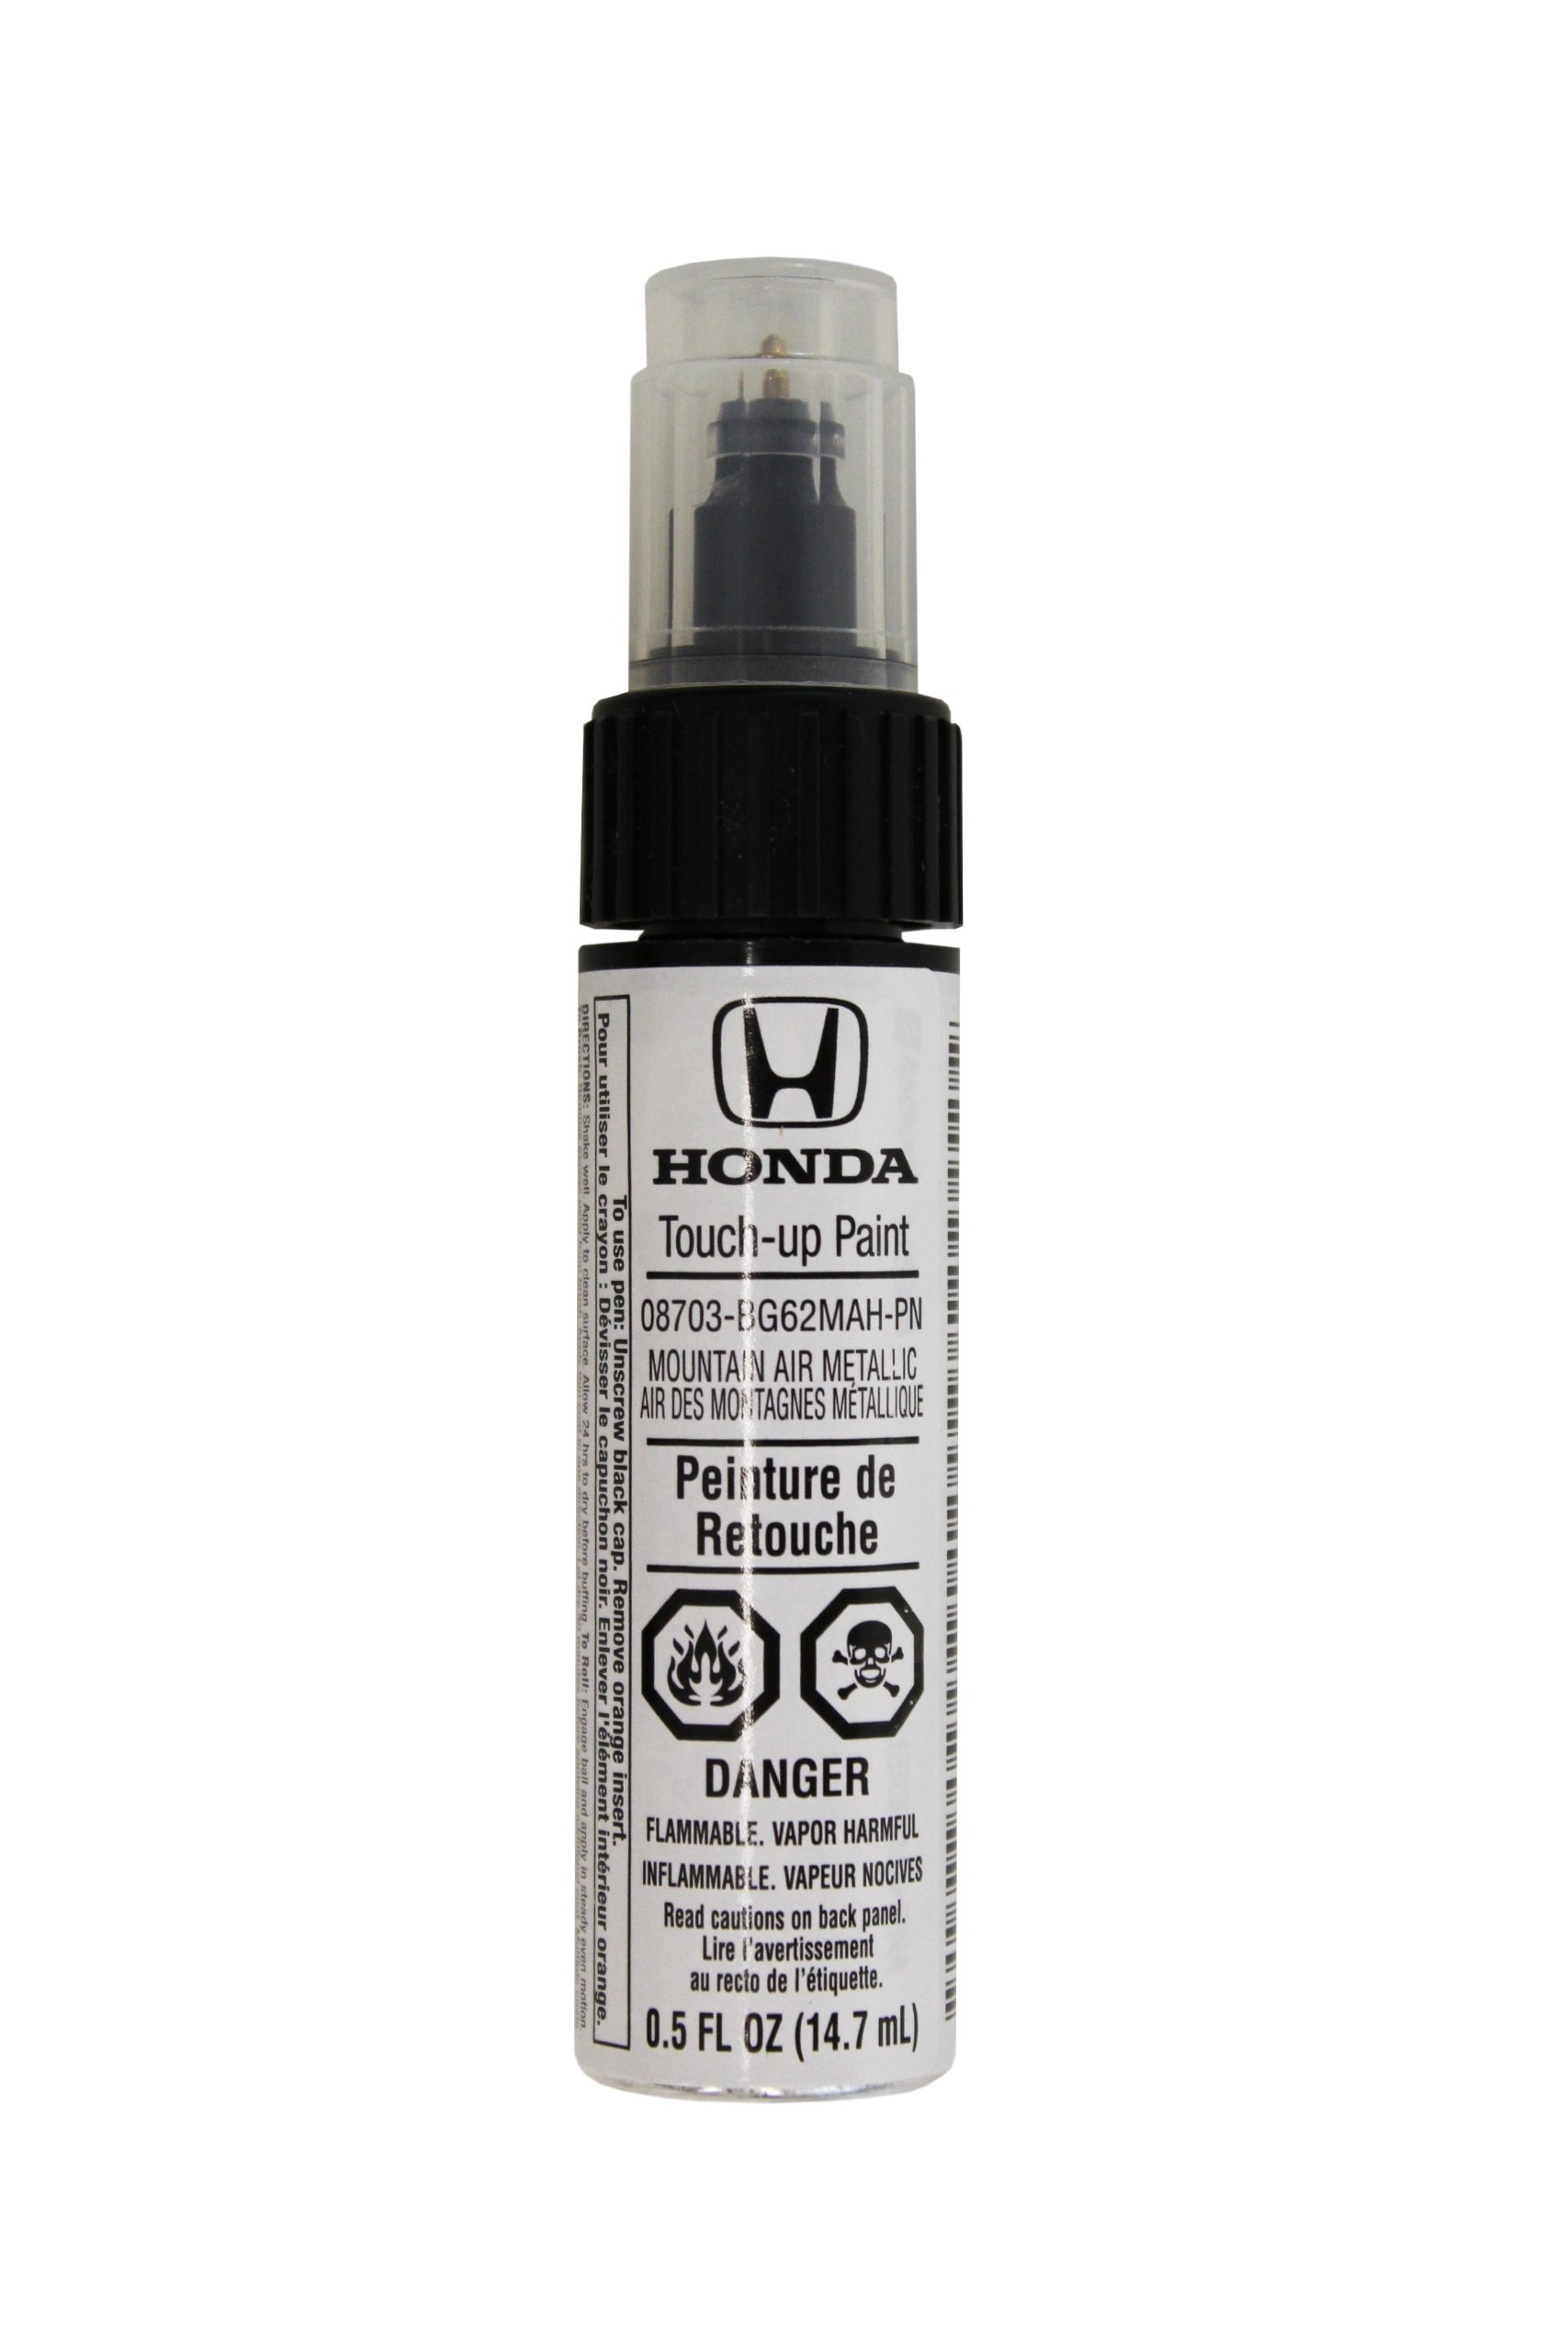 Genuine Honda Accessories 08703-BG62MAH-PN New Mountain Air Metallic Touch-Up Paint by Honda